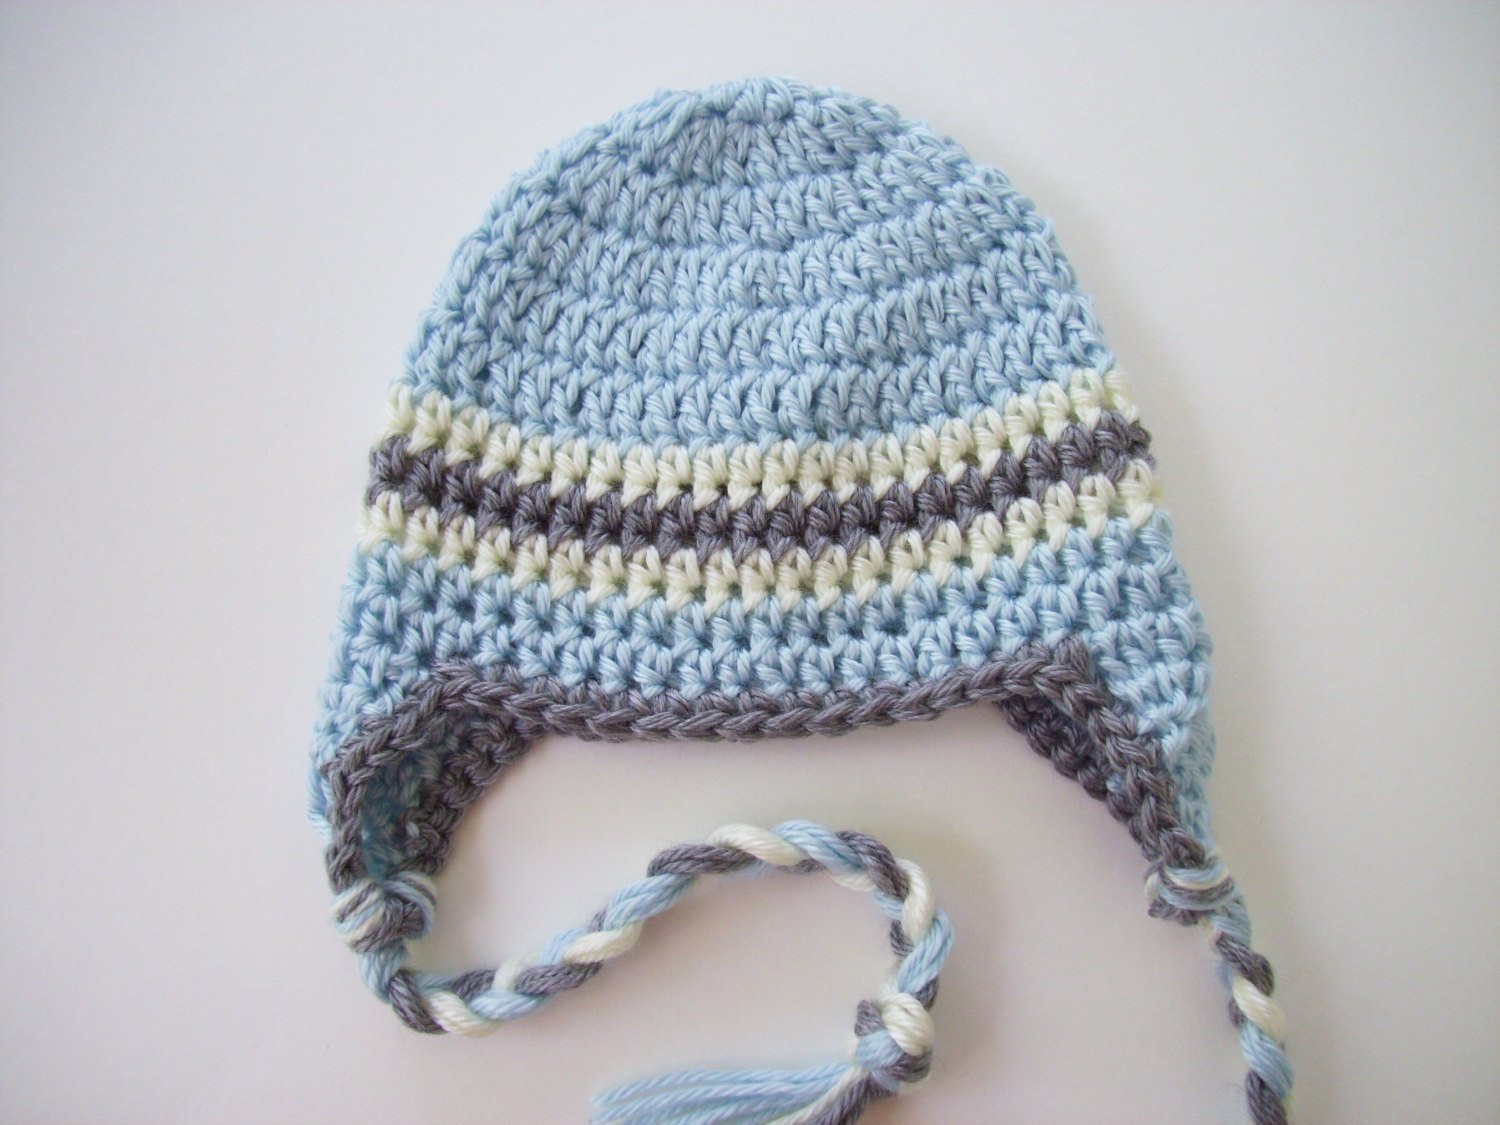 Crochet Hat with Ear Flaps Awesome Crochet Baby Hat toddler Boy Hat Boy Ear Flap Hat Baby Hat Of Delightful 50 Pictures Crochet Hat with Ear Flaps